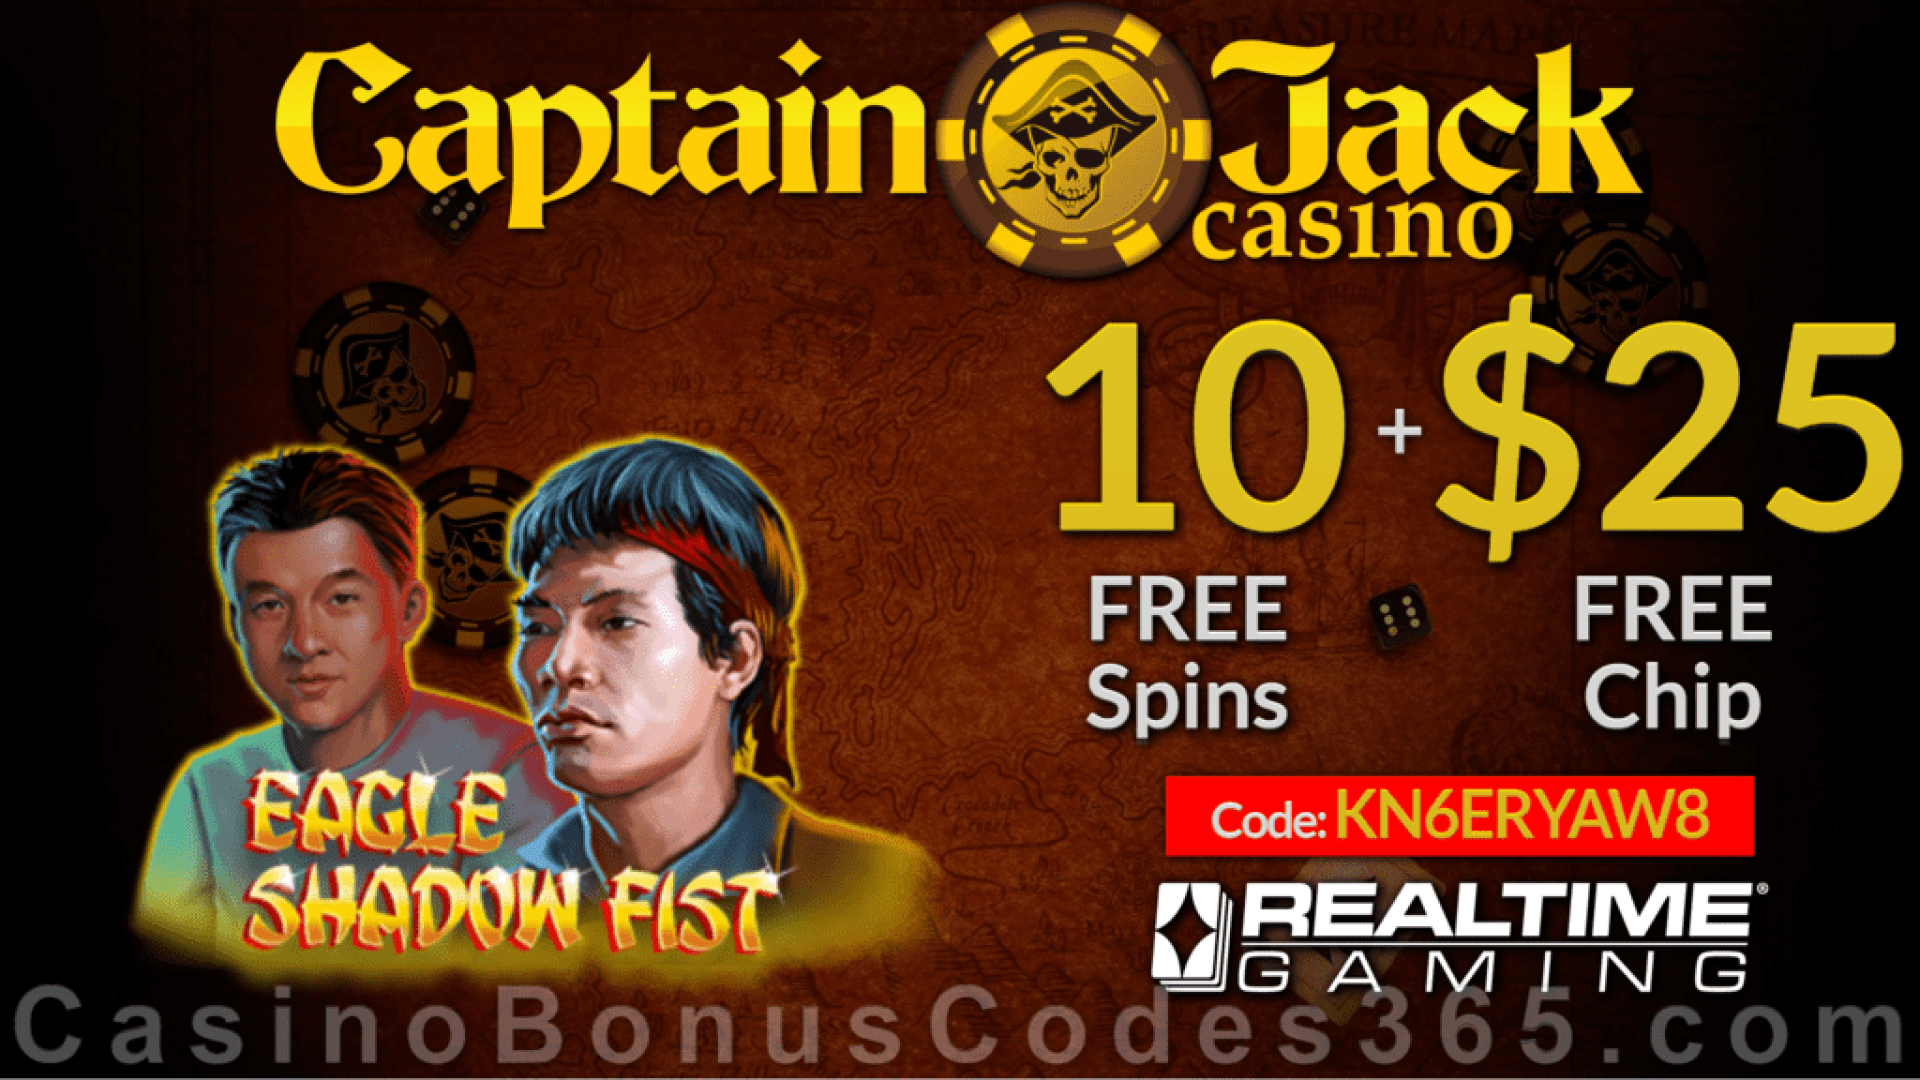 Captain Jack Casino $25 FREE Chip plus 10 FREE Spins on RTG Eagle Shadow Fist Special No Deposit Deal